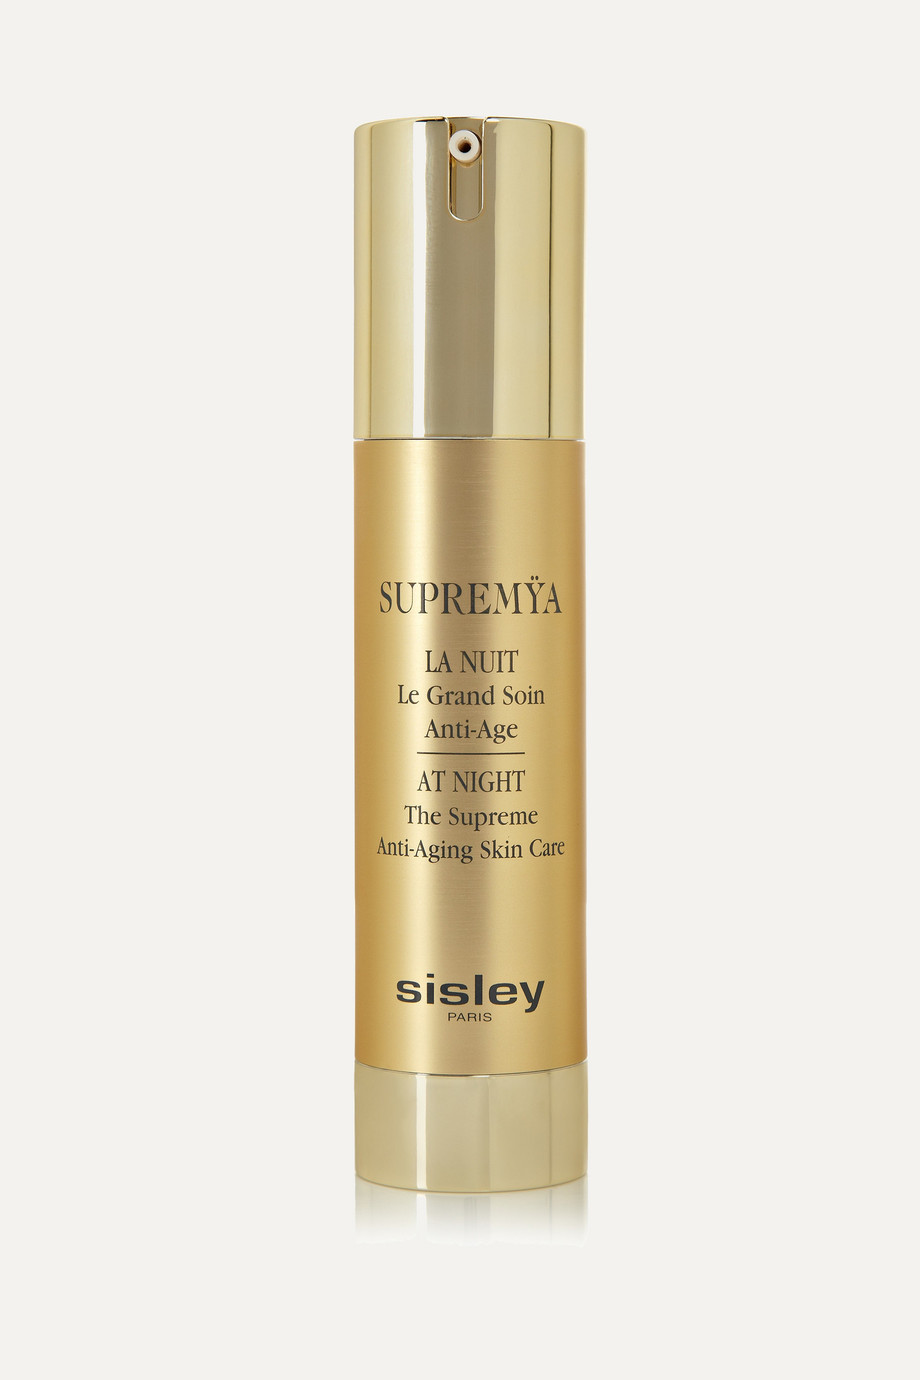 Sisley Supremÿa At Night - The Supreme Anti-Aging Skin Care, 50ml